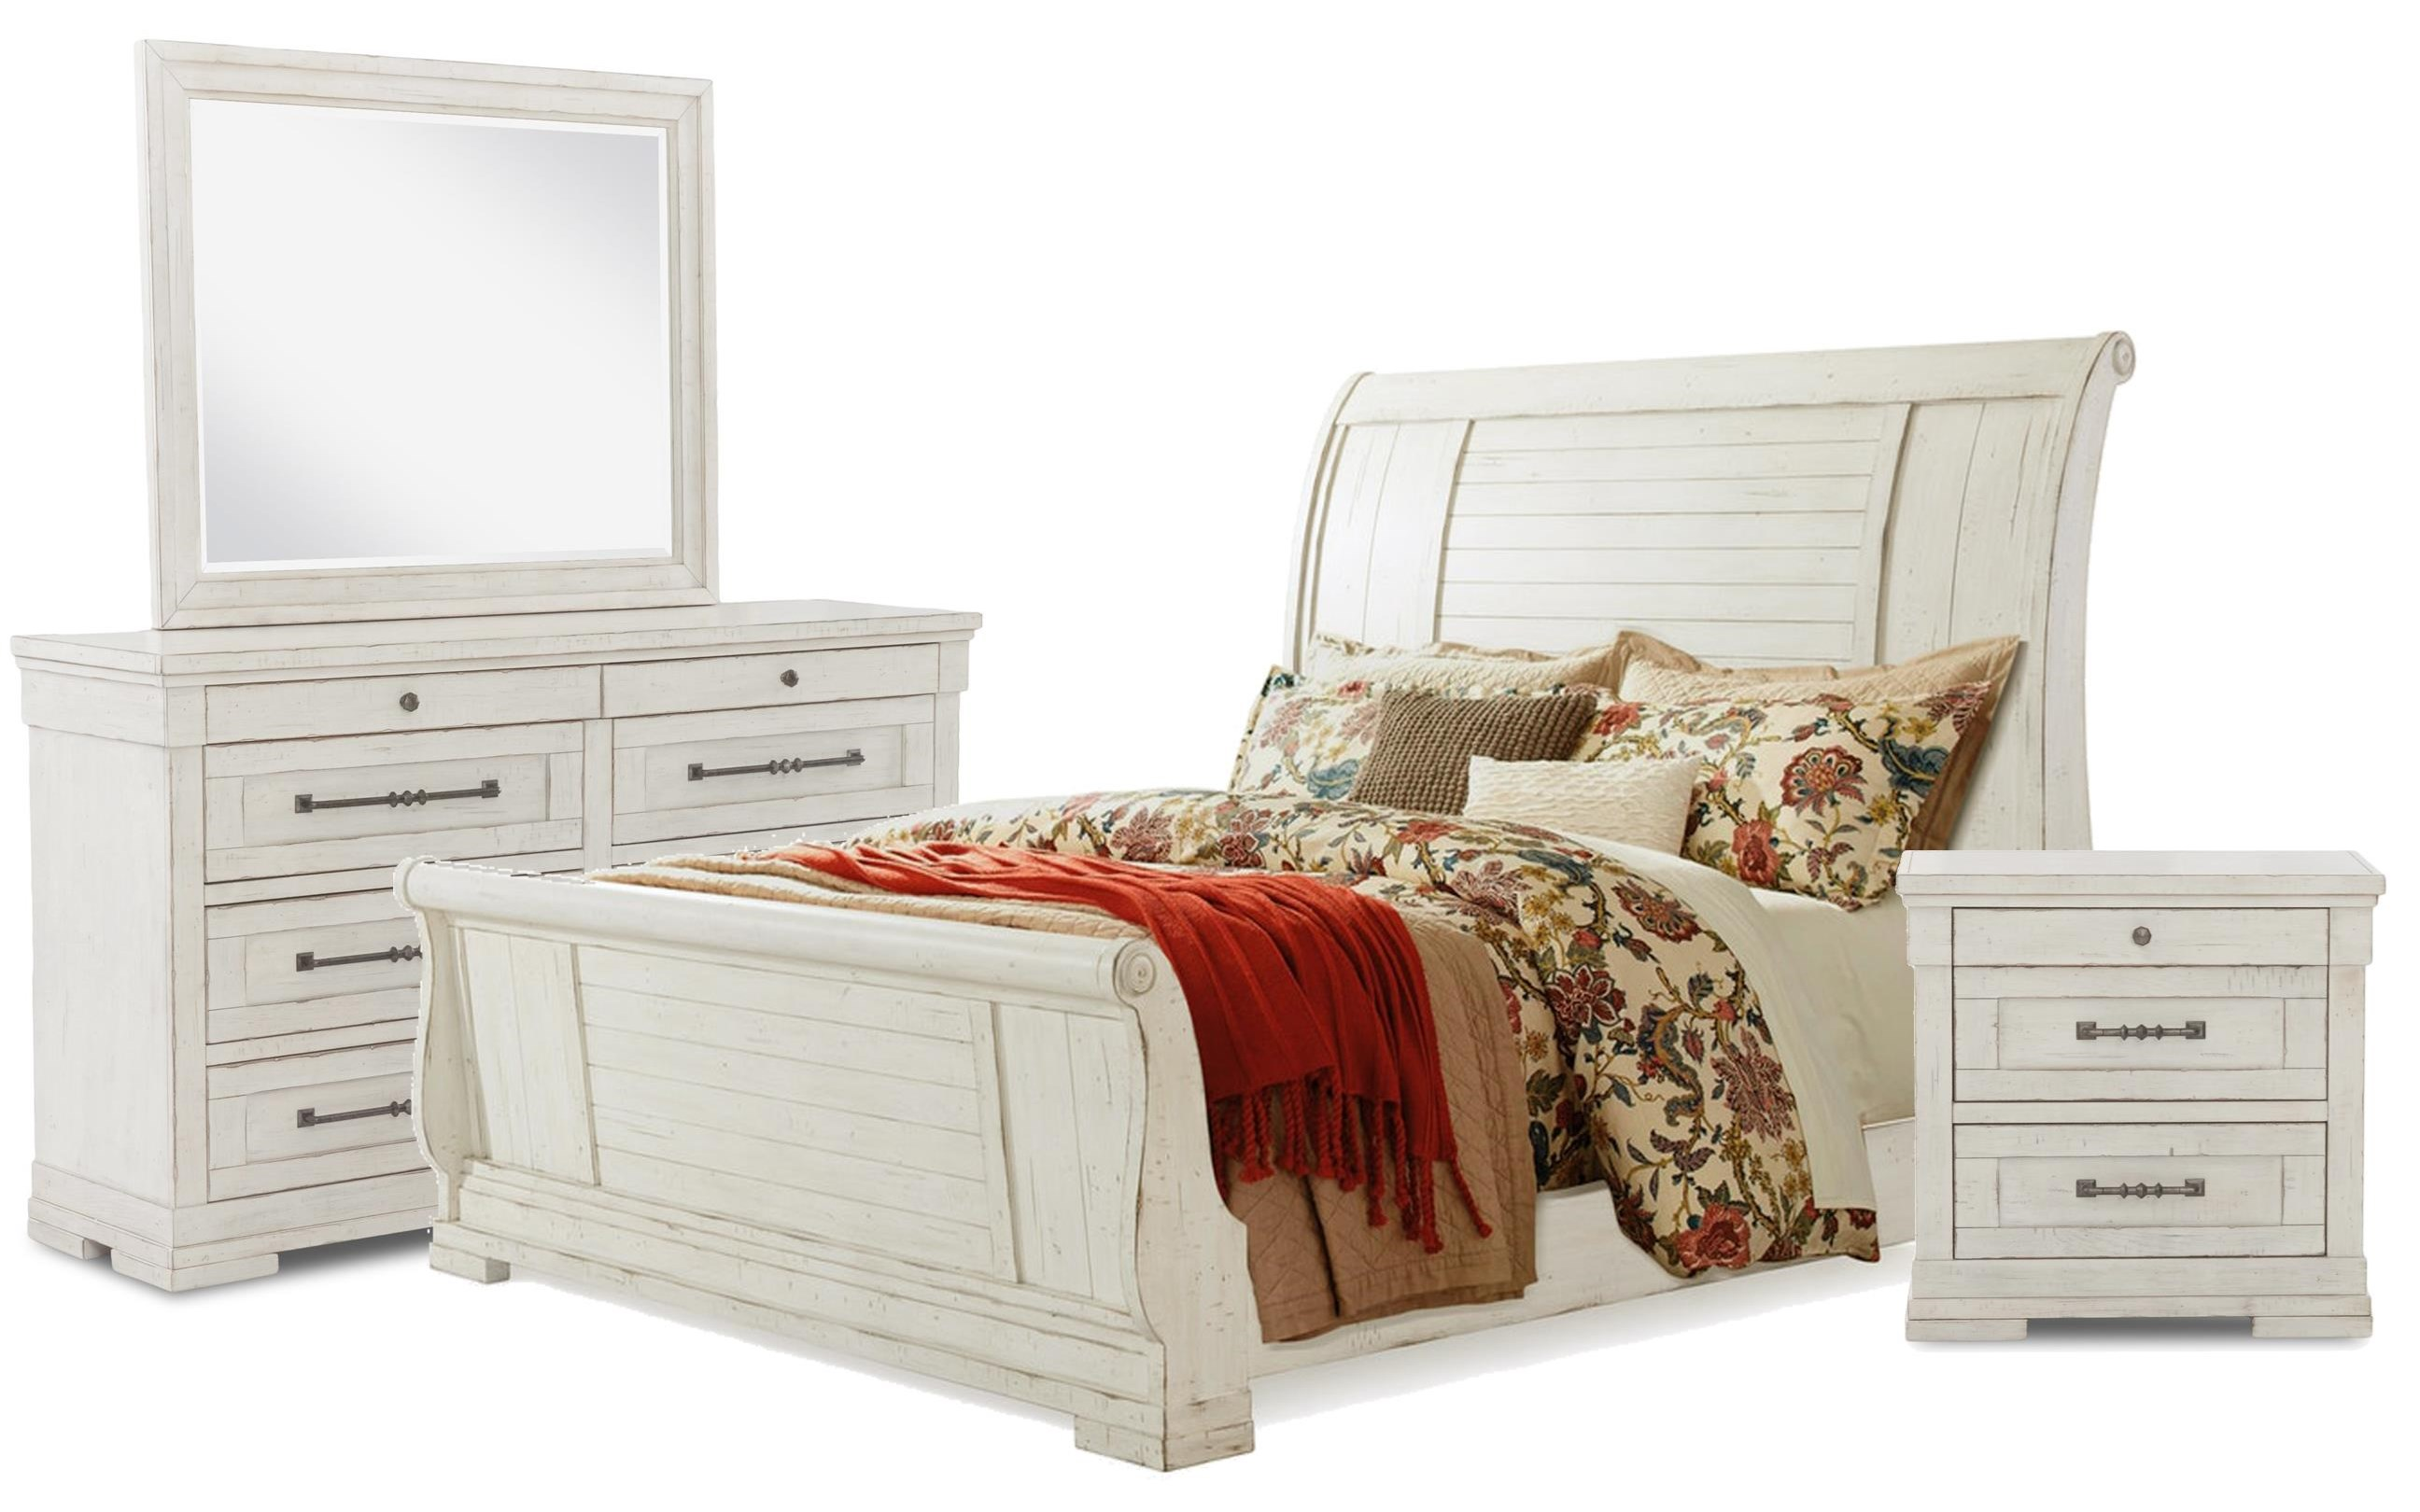 Coming Home Queen Bed, Dresser, Mirror, Nightstand by Trisha Yearwood Home Collection by Klaussner at Johnny Janosik